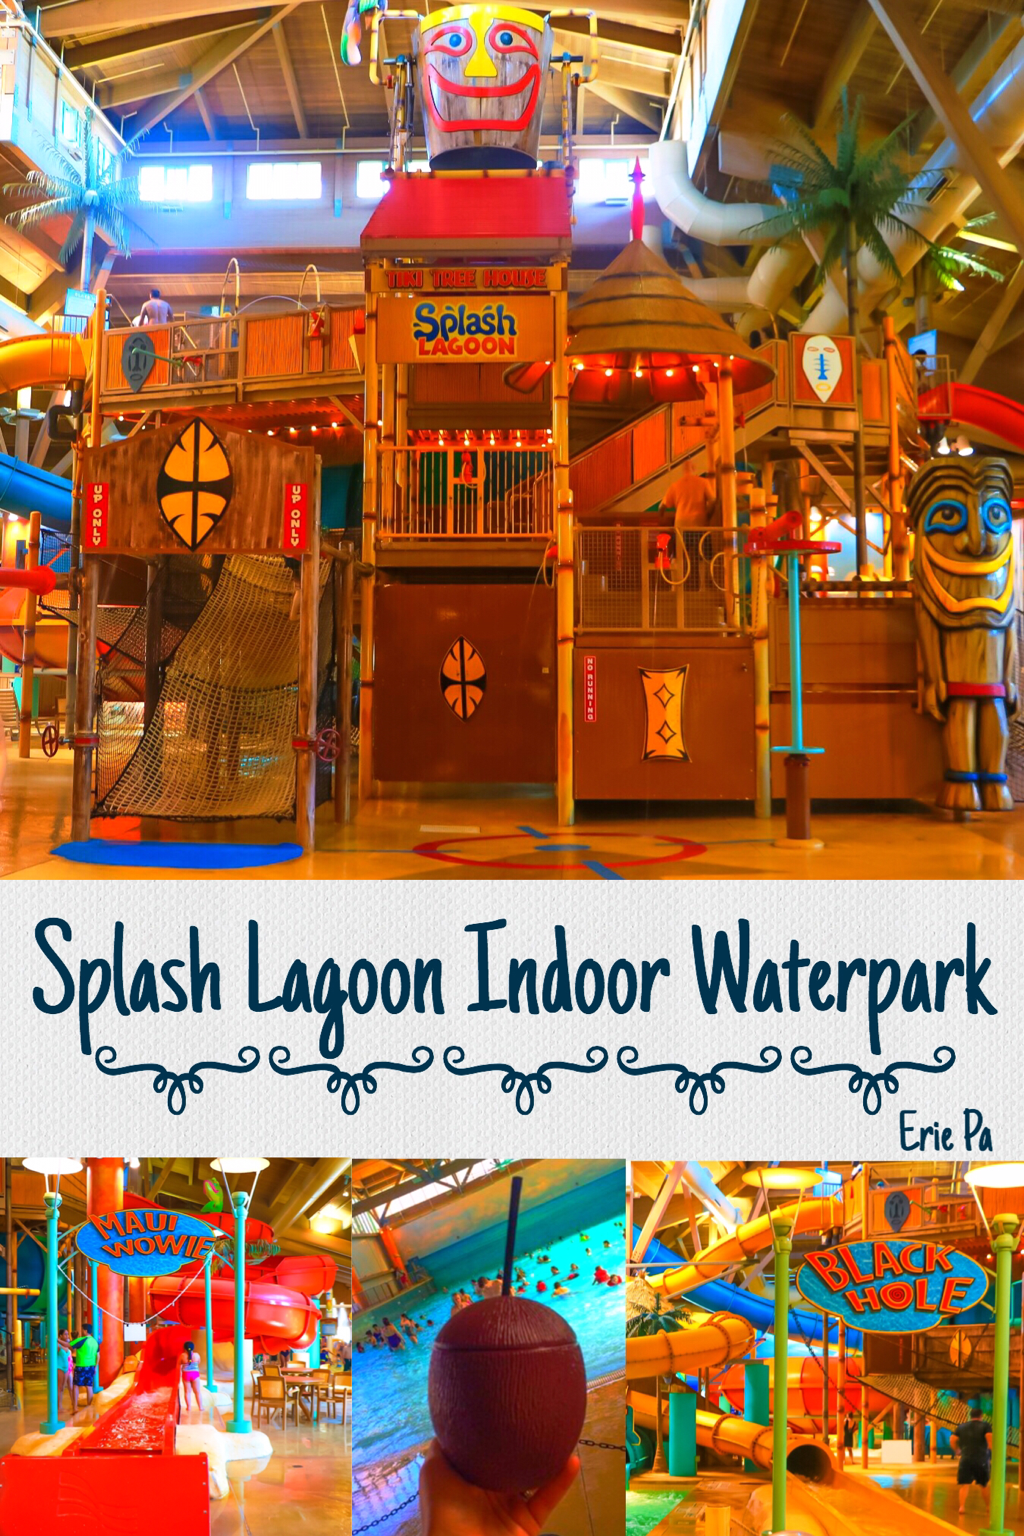 What are Splash Lagoon packages?